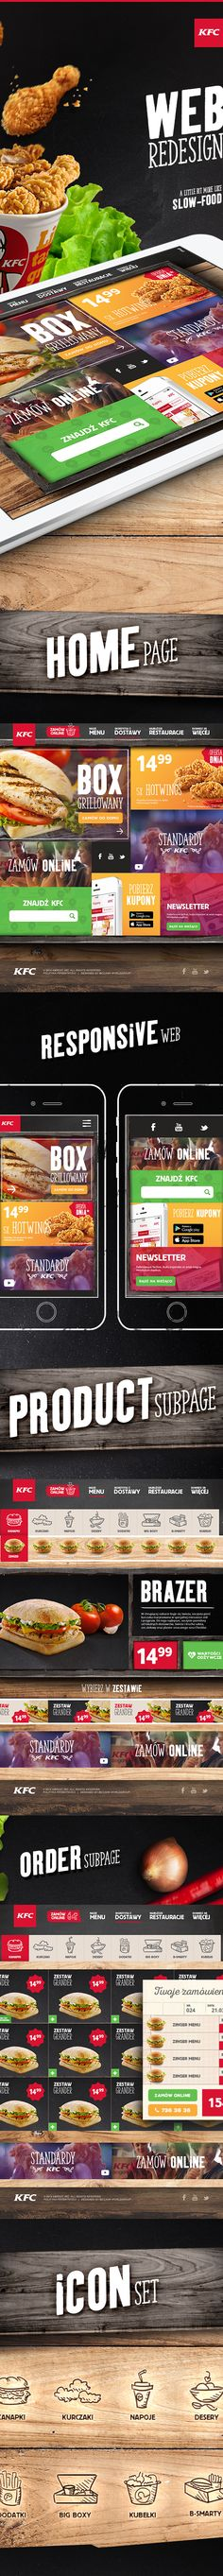 KFC - Website redesign on Behance